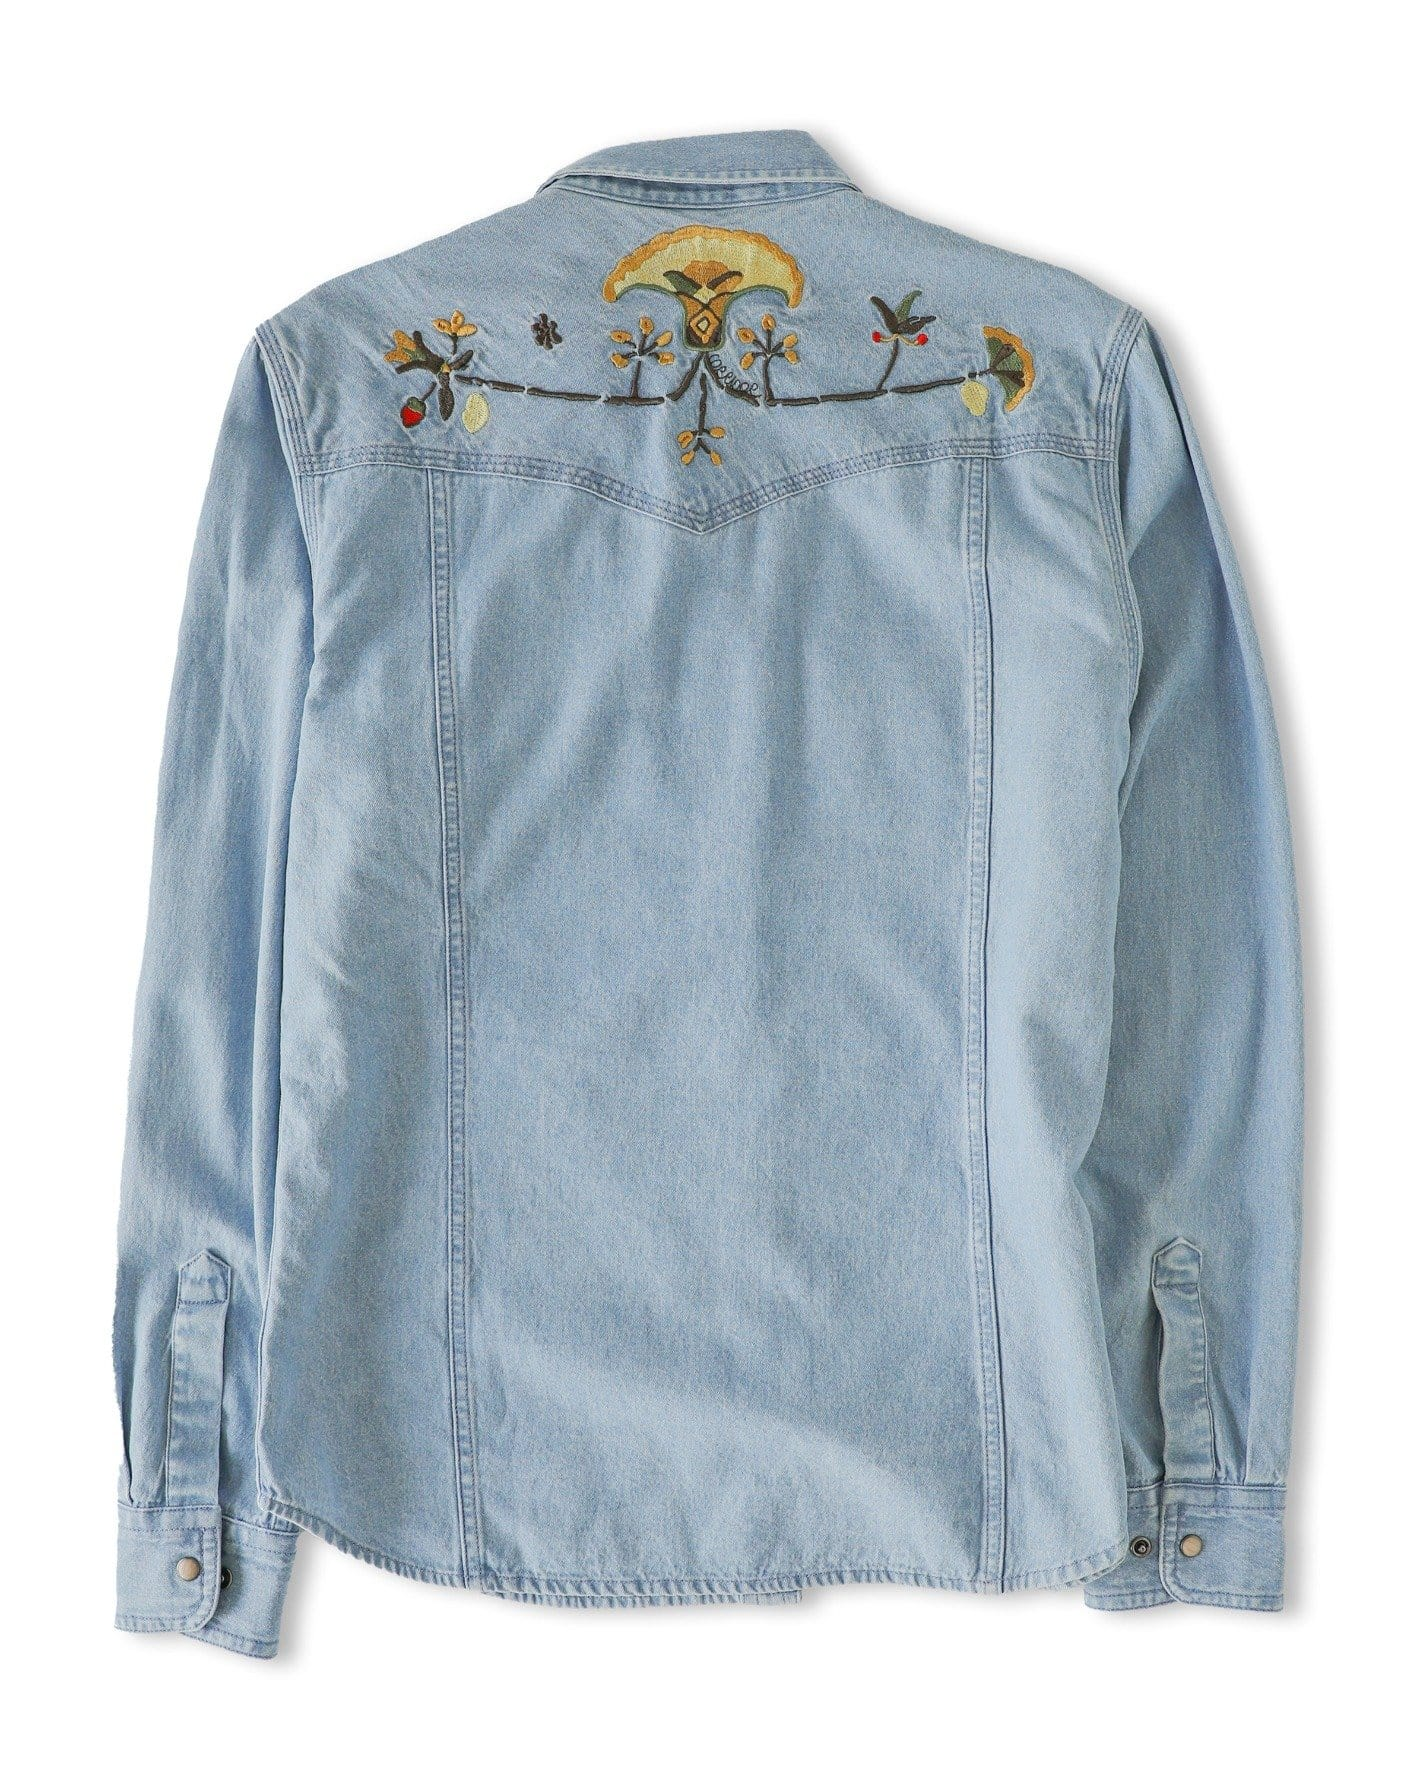 Embroidered Western Denim